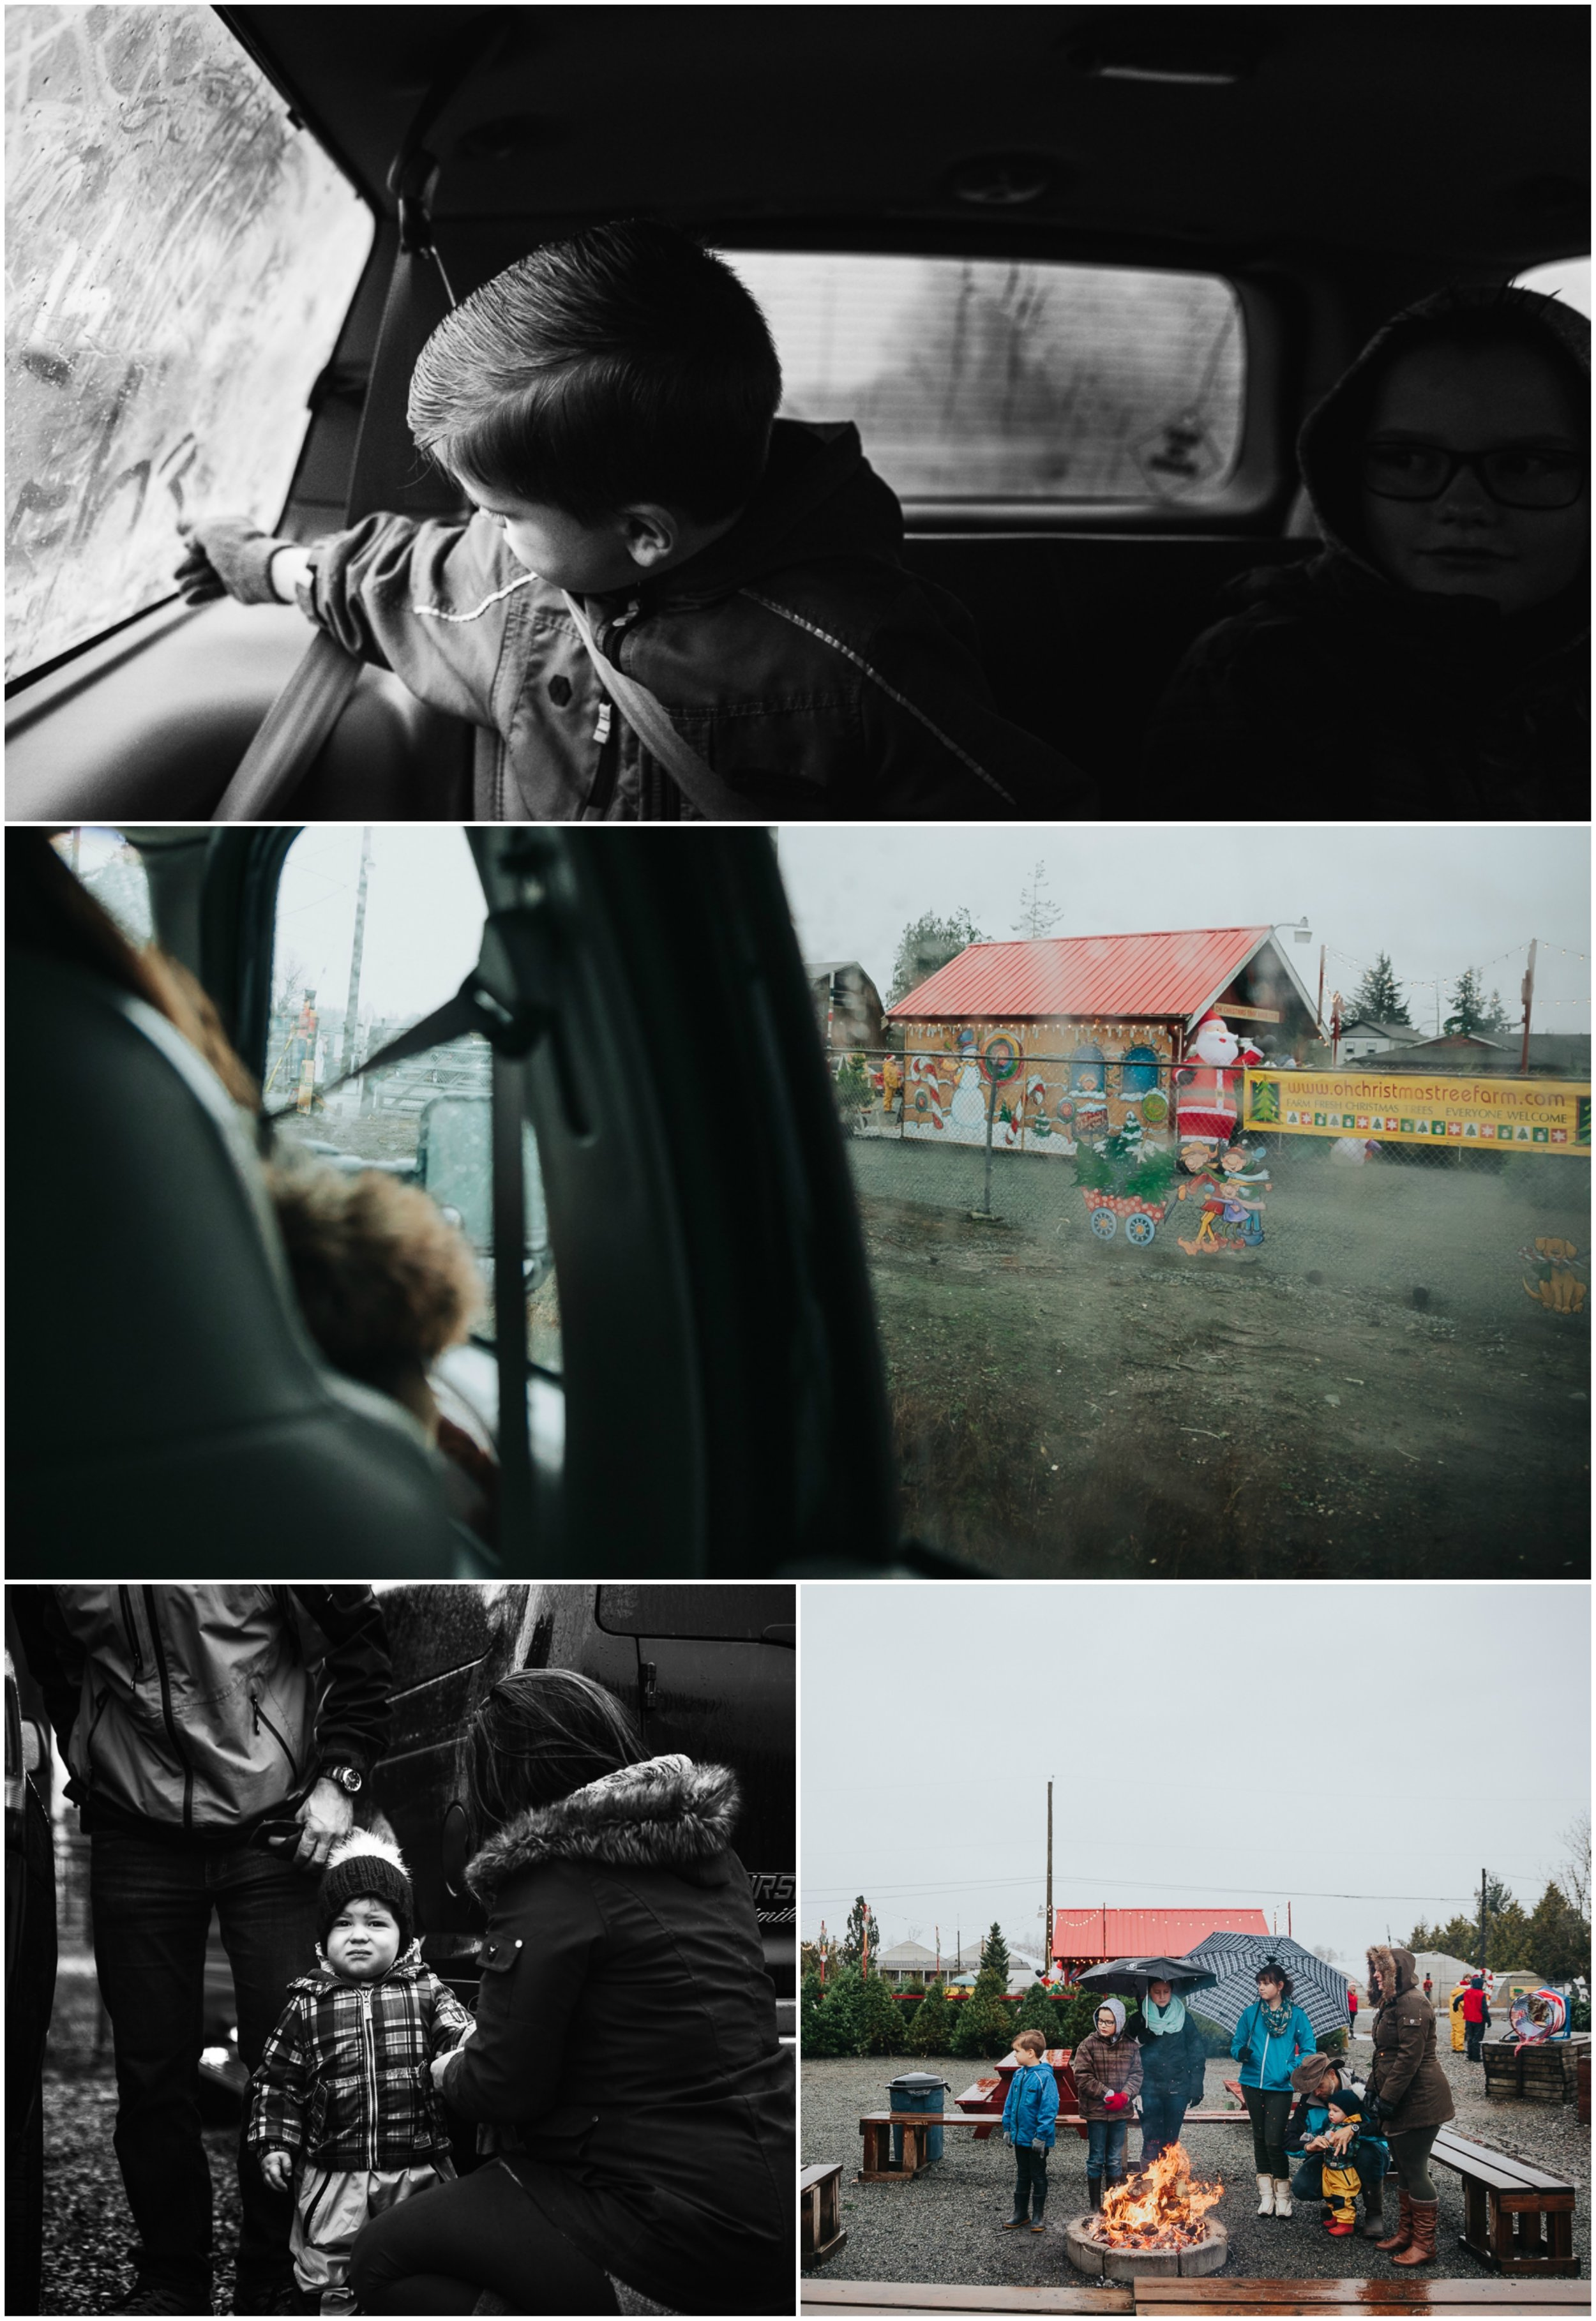 Driving to the farm, Dealing with the rain and the roaring fire at Oh Christmas Tree Farms  Christmas Tree Hunt Tradition at Oh Christmas Tree Farms in Langley, BC. Documentary Family Holiday Tradition, Real life moments with a family of 7 by Mimsical Photography. West Coast photographer in Lower Mainland, British Columbia.